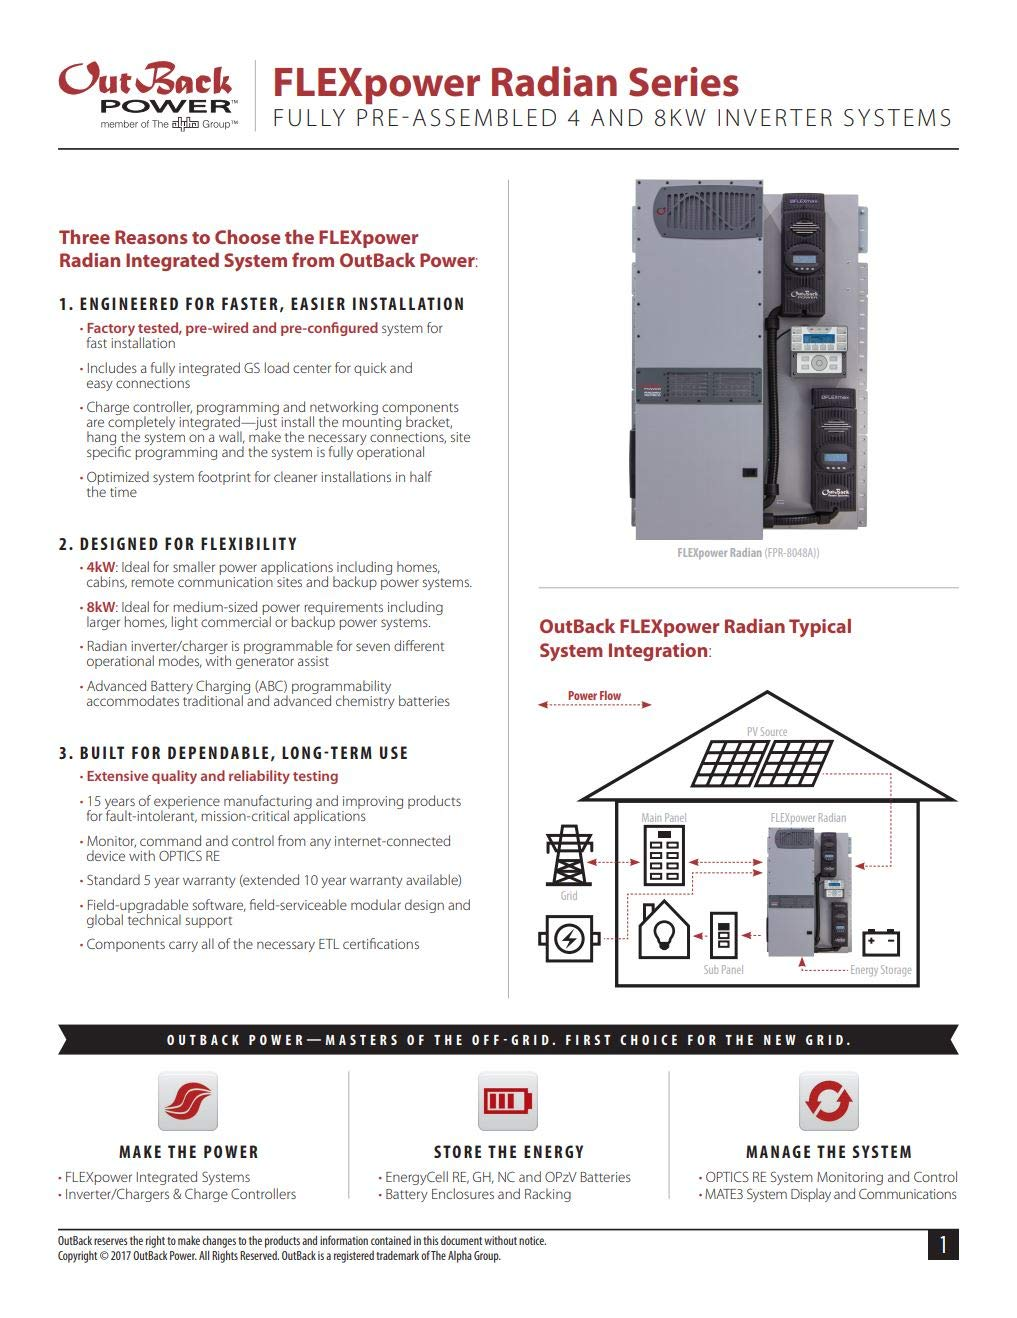 Outback Radian Inverter Wiring Diagram. For Solar Battery Box Wiring on